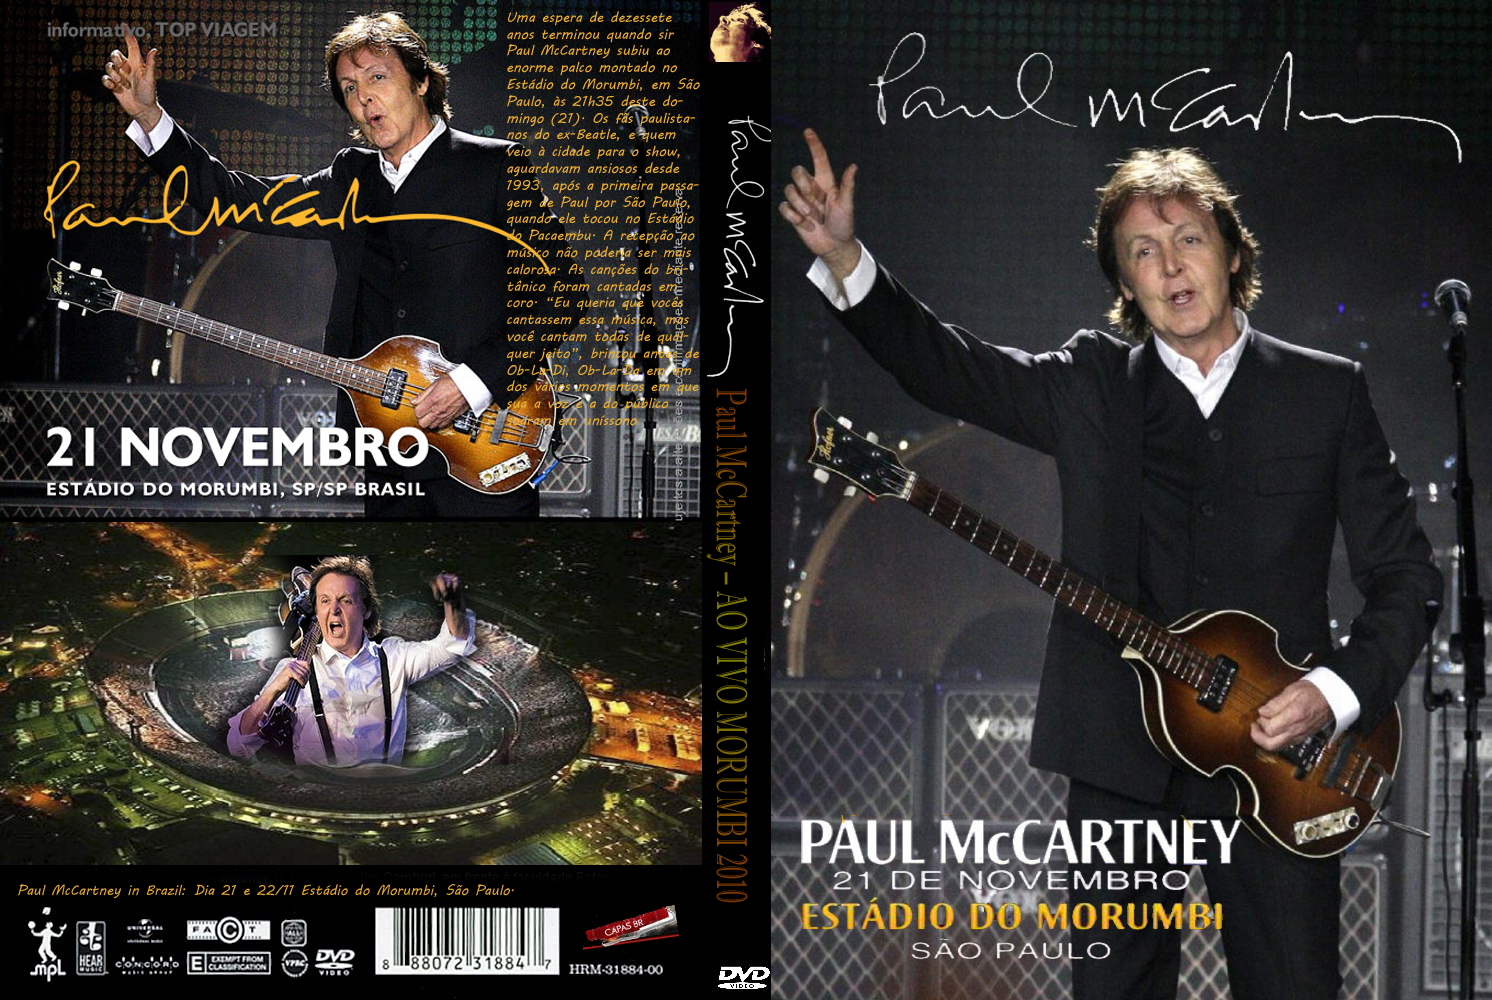 Show Paul McCartney No Brasil 2010 Paul McCartney  25E2 2580 2593 AO VIVO MORUMBI 2010